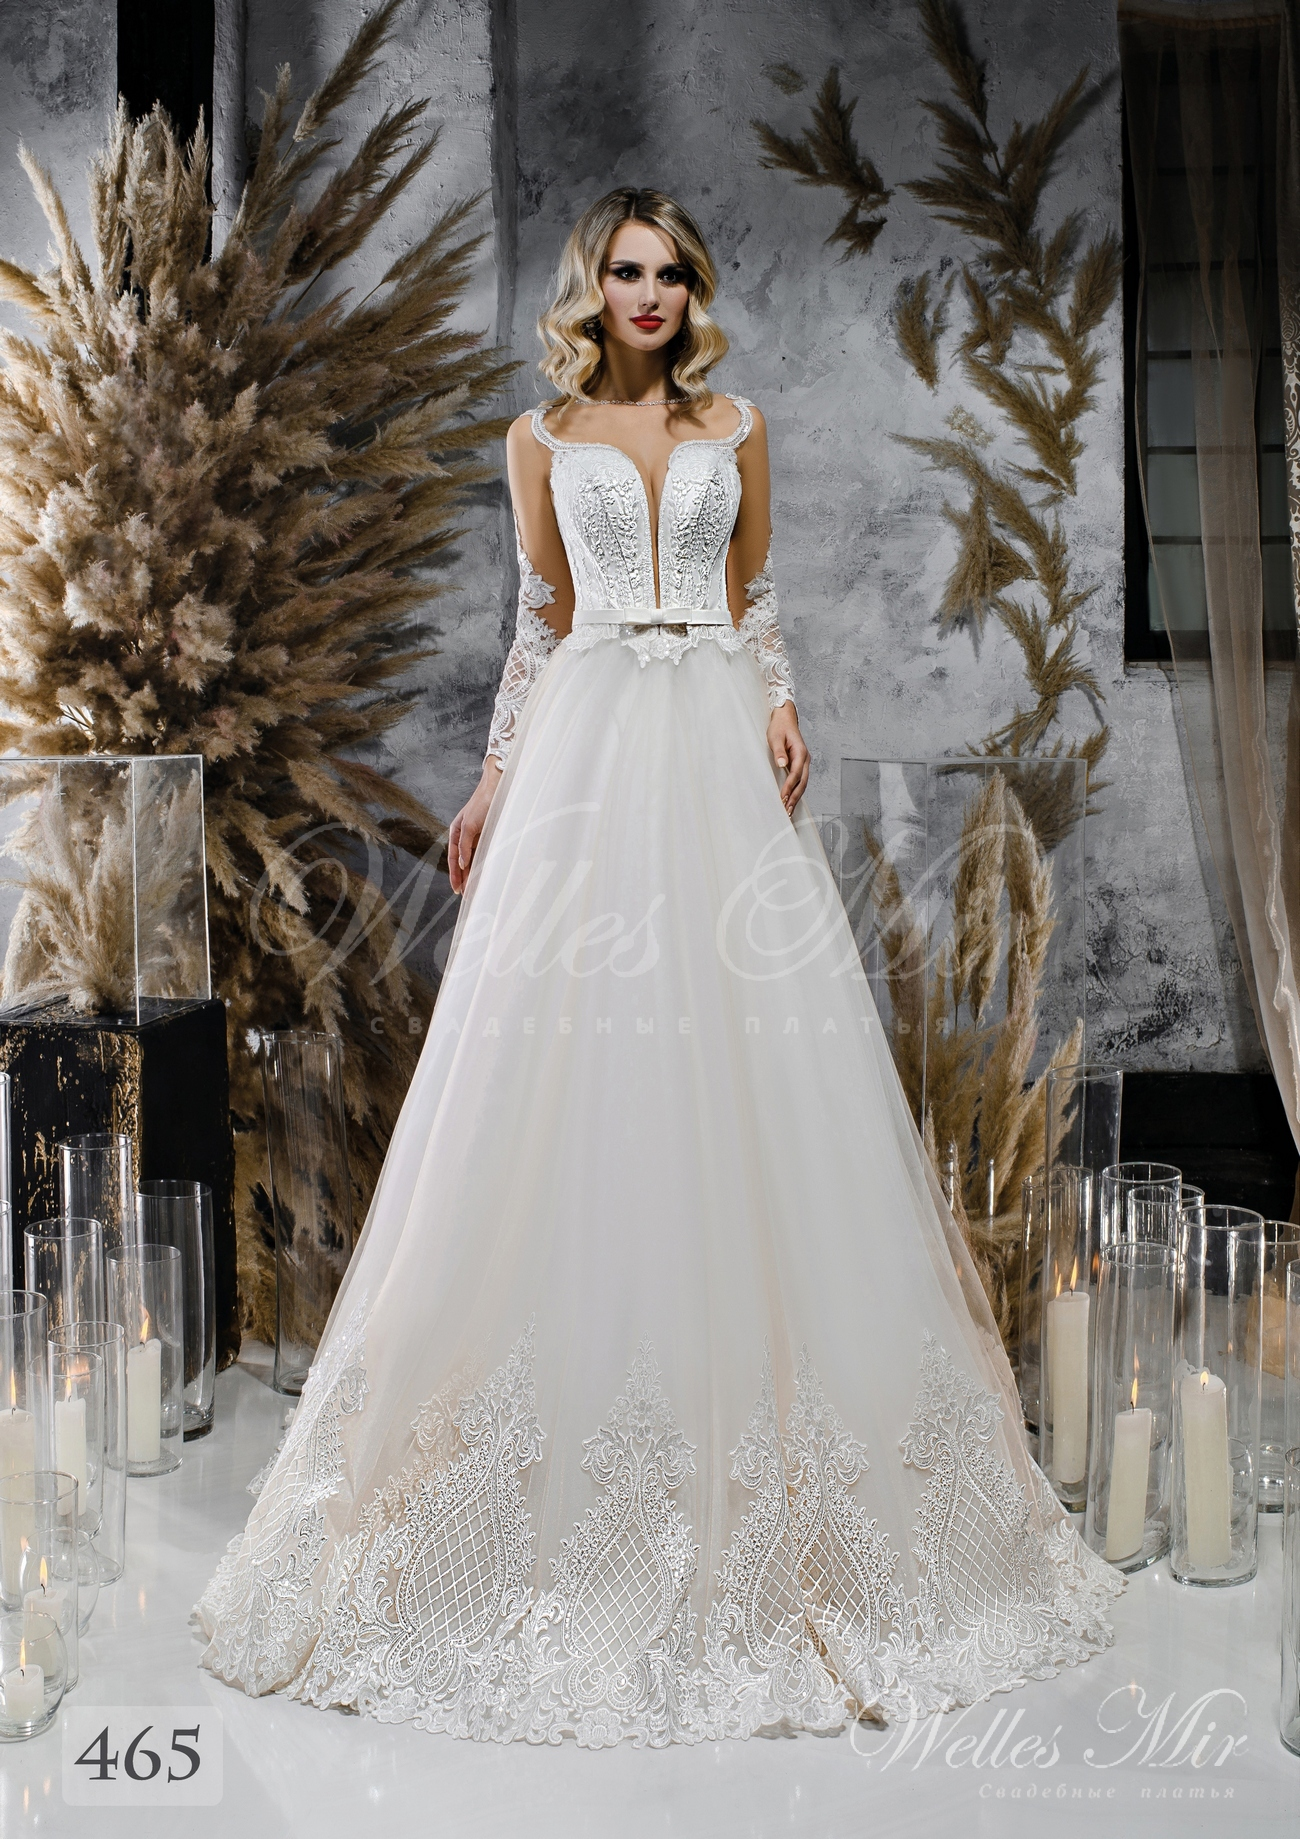 Wedding dresses 465